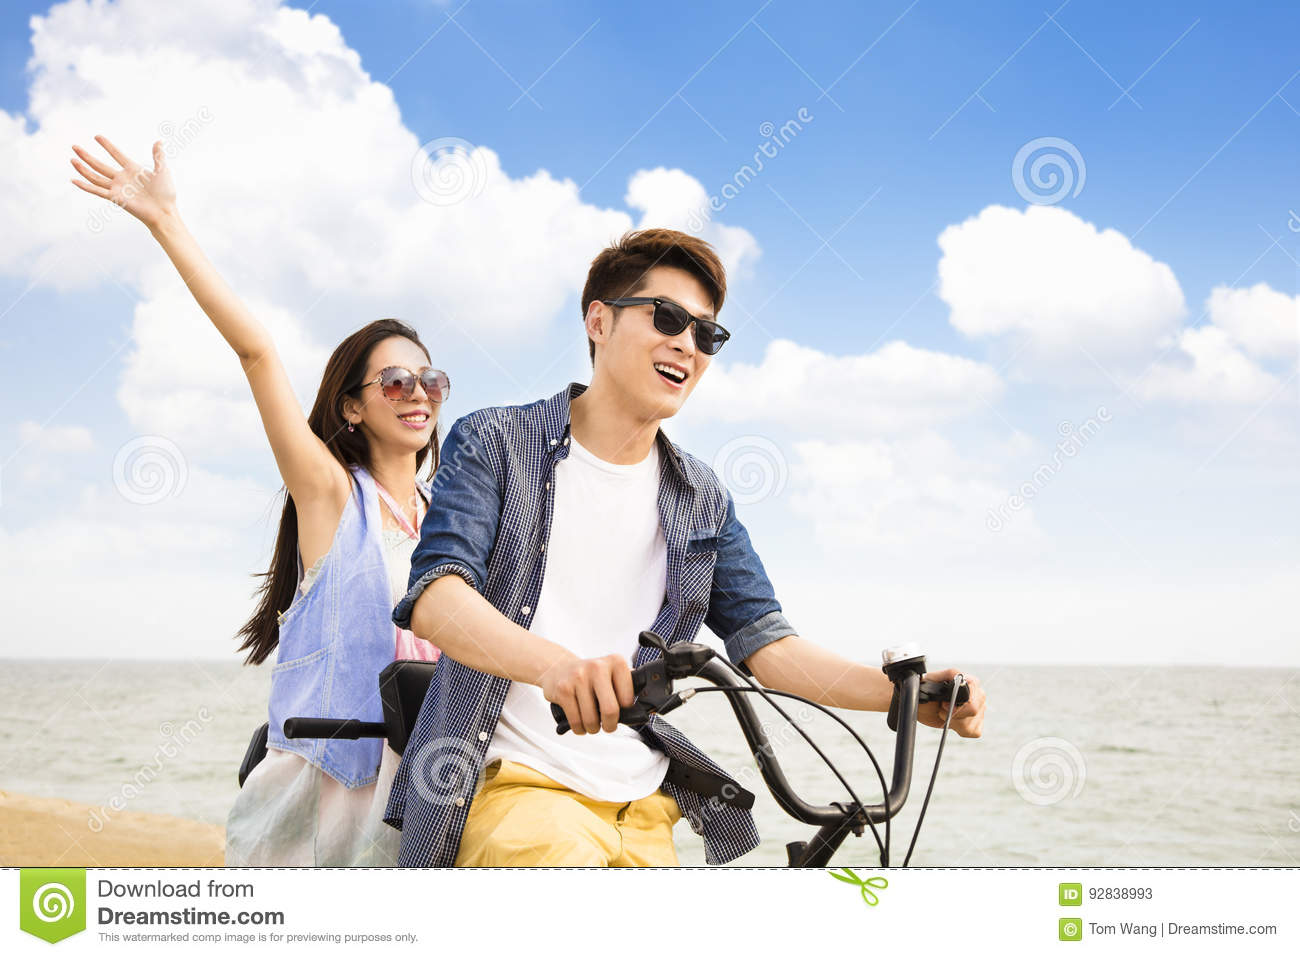 Young couple riding bicycle on the beach